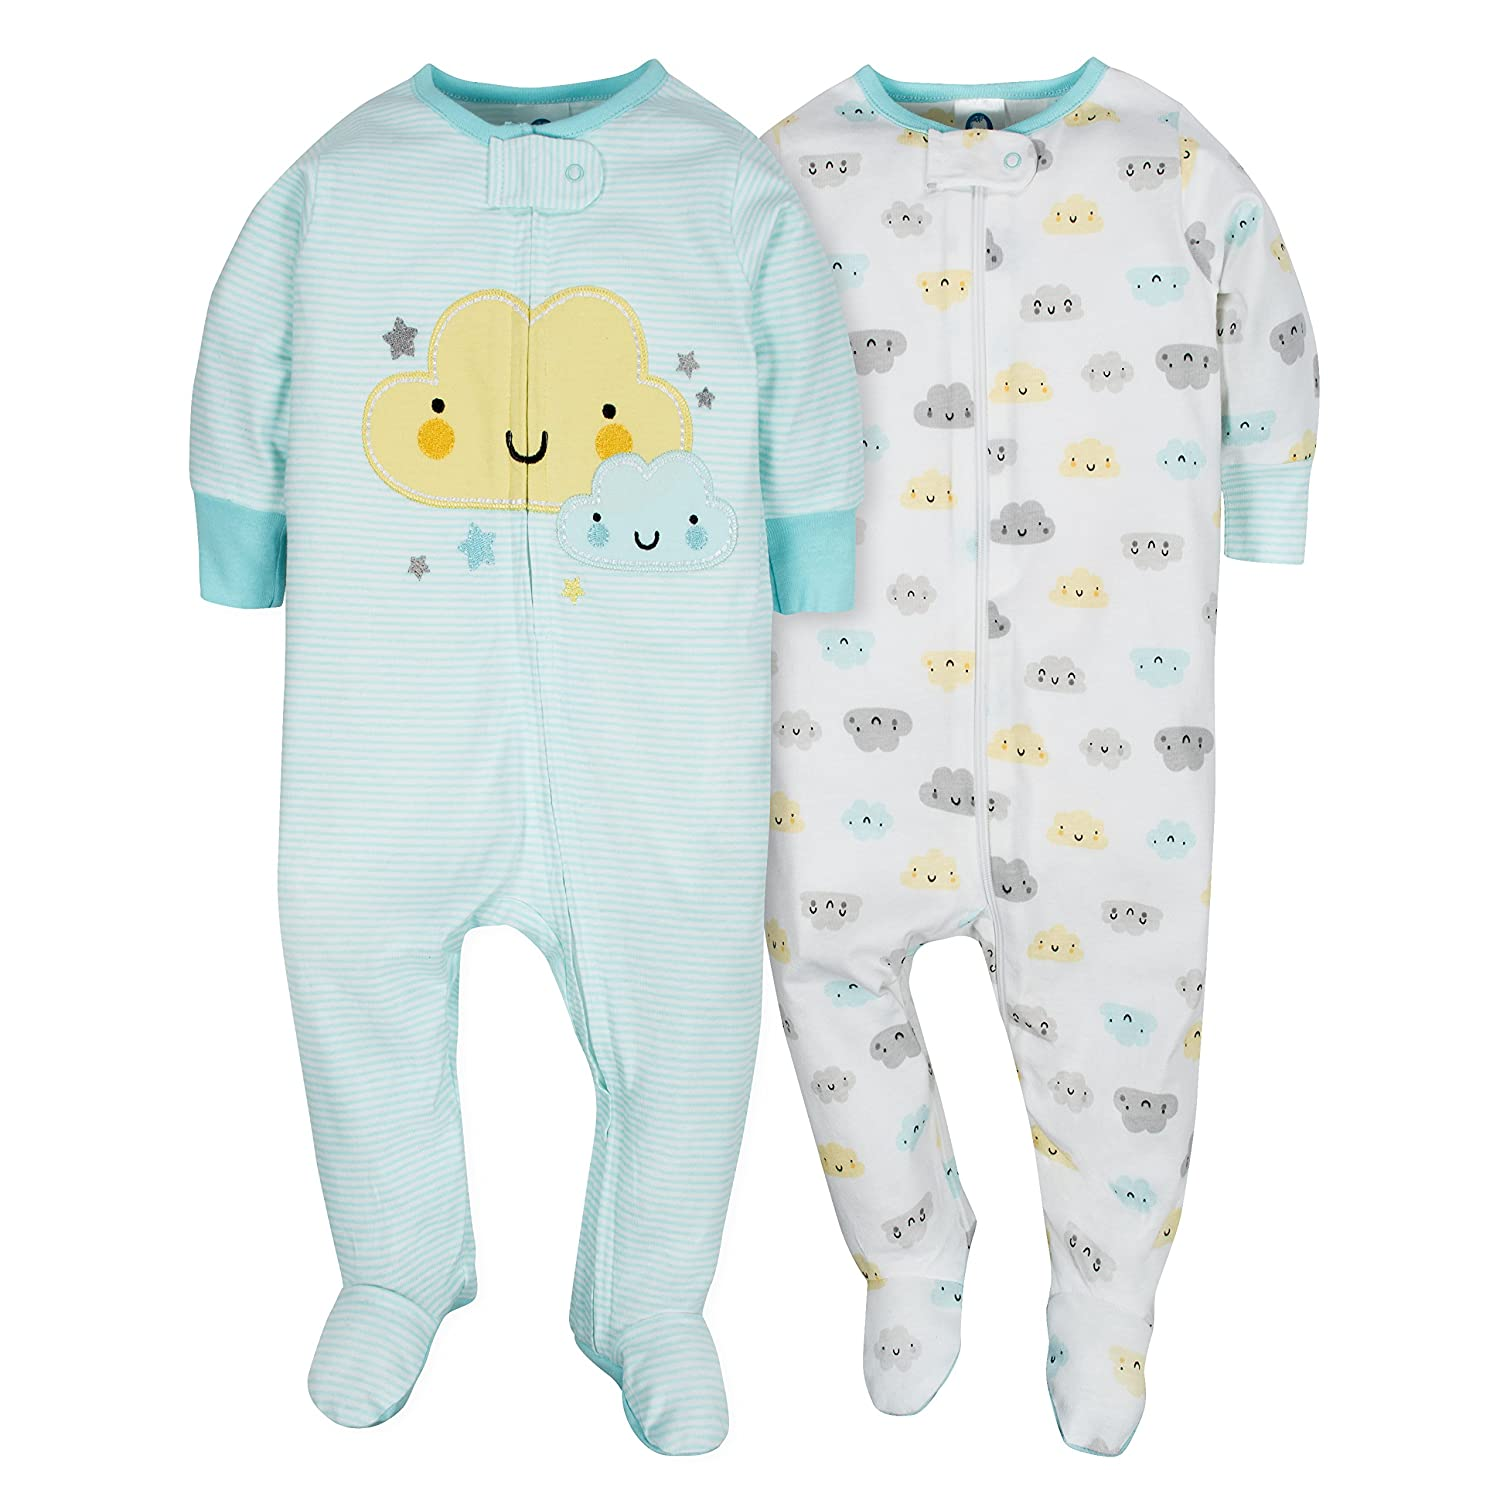 a8eed6a1064d Amazon.com  Gerber Baby Boys  2 Pack Zip Front Sleep  n Play  Clothing